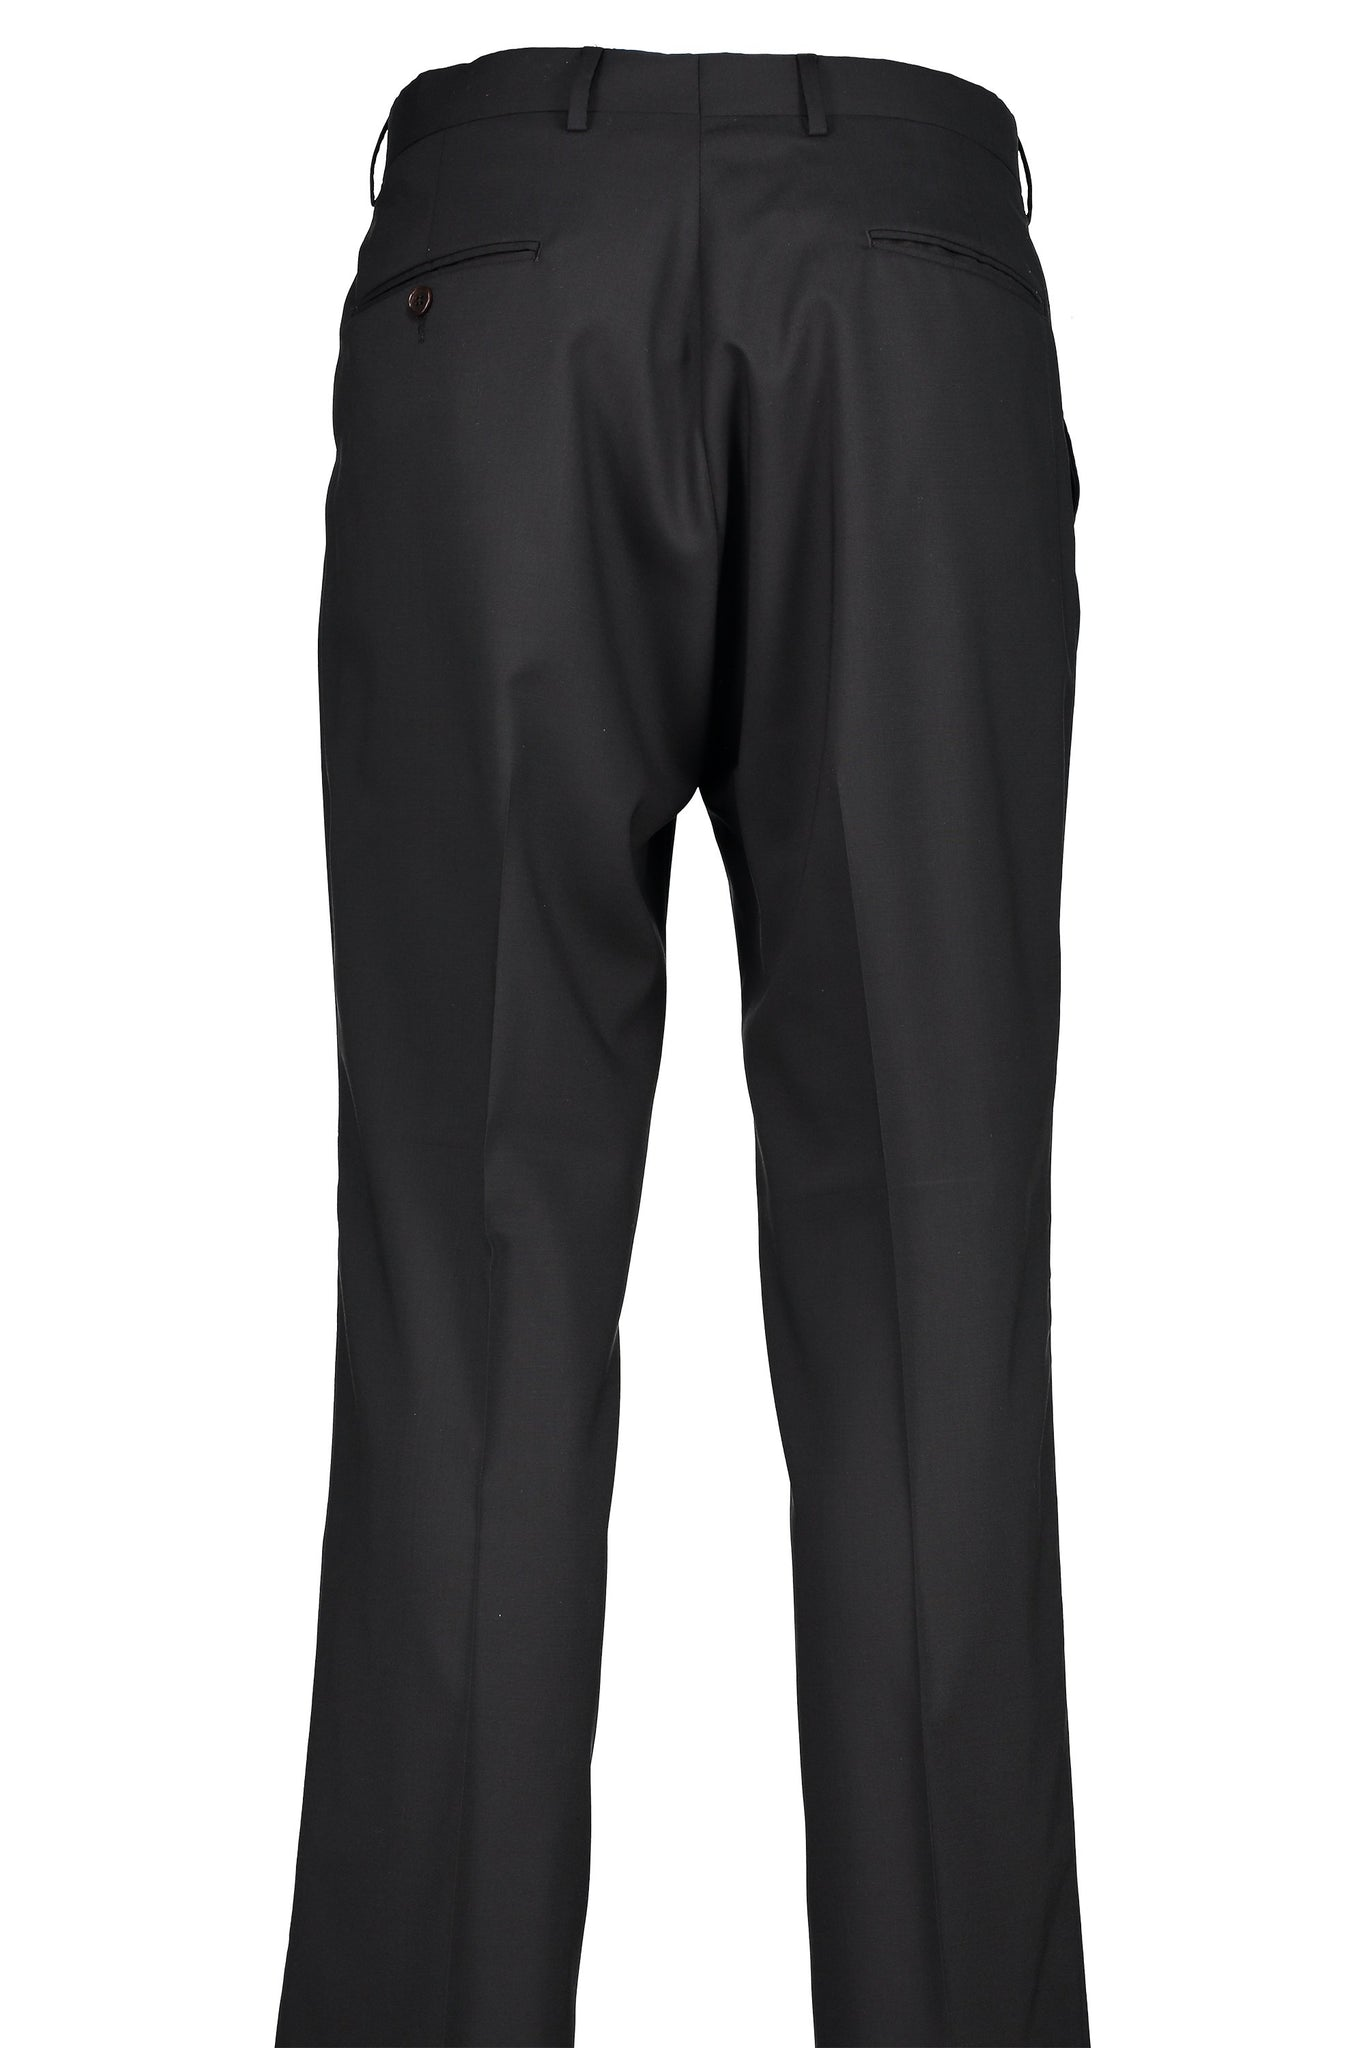 Classic Fit Black H-Tech Wool Suit Separate Pleated Pants -  Hardwick.com